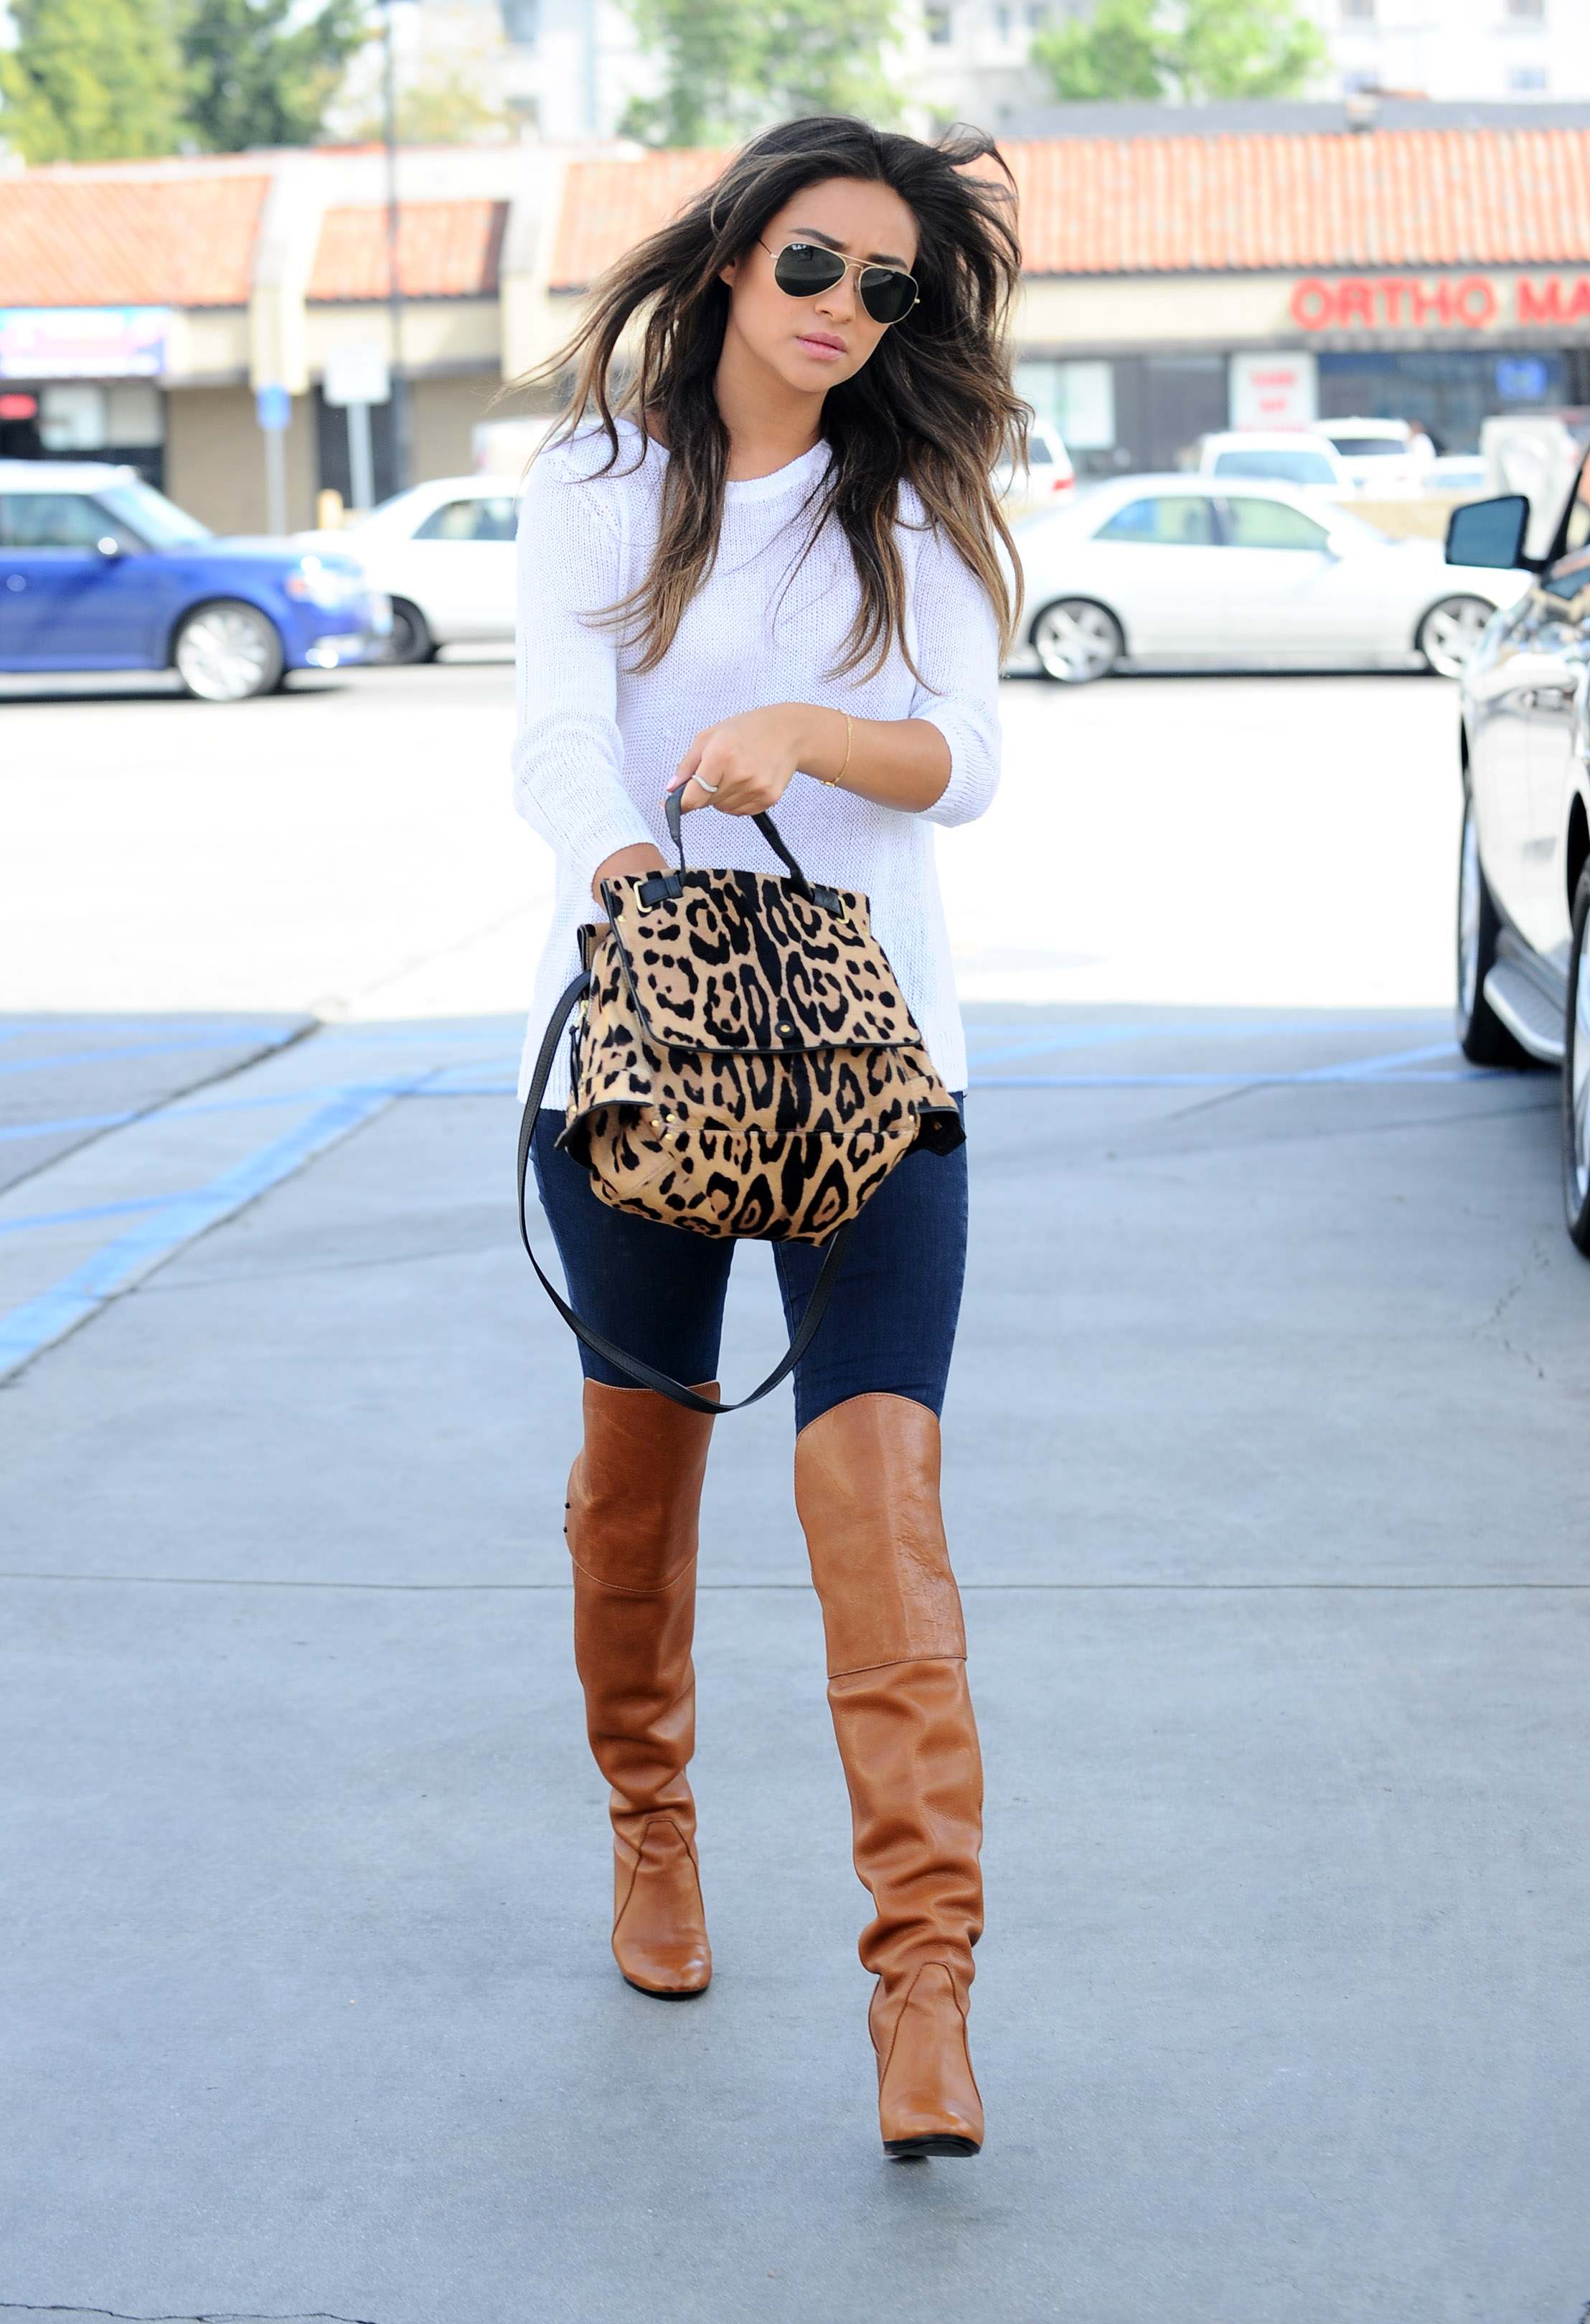 8205d97567b57 Shay Mitchell Pumping gas in Los Angeles on April 2014 – Fashion ...